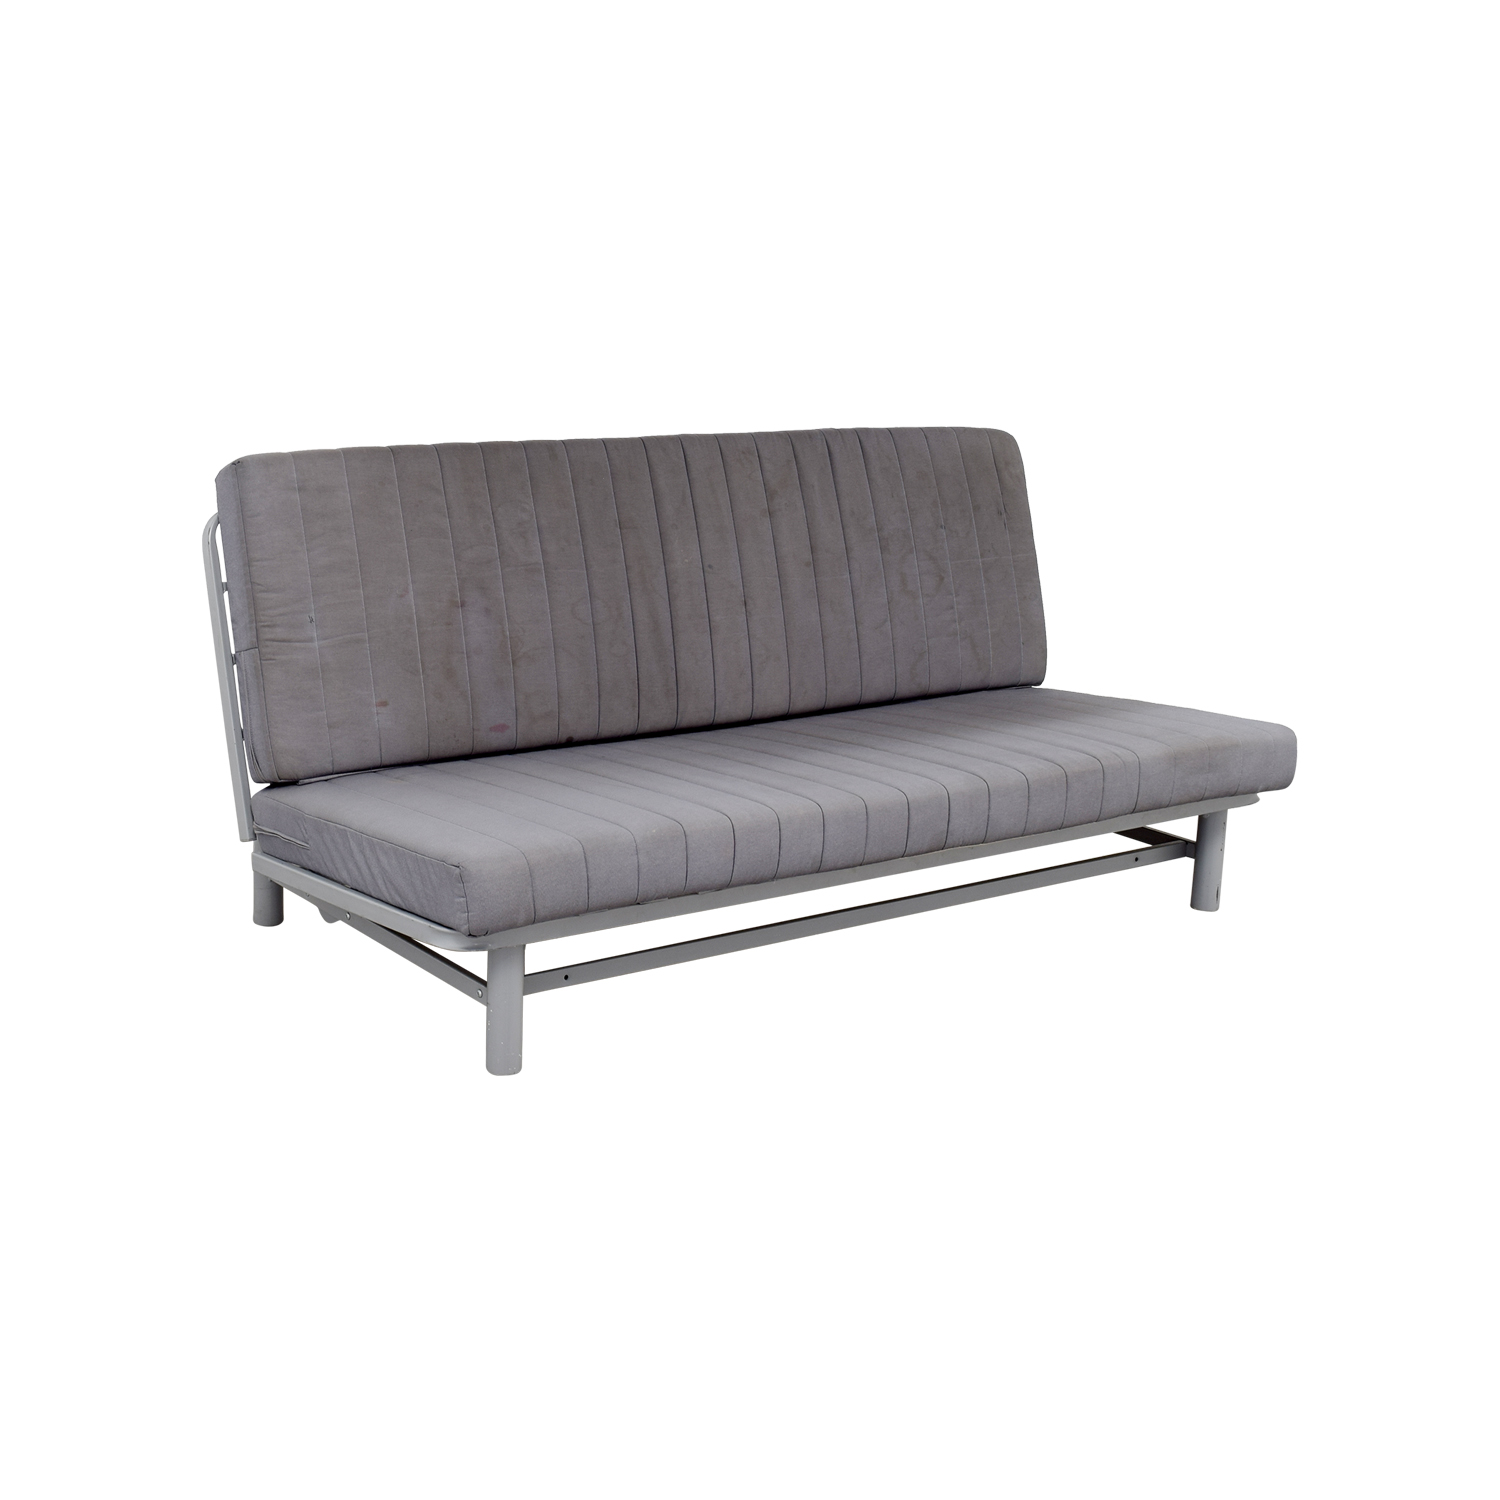 78% OFF IKEA IKEA Grey Sofa Bed Sofas